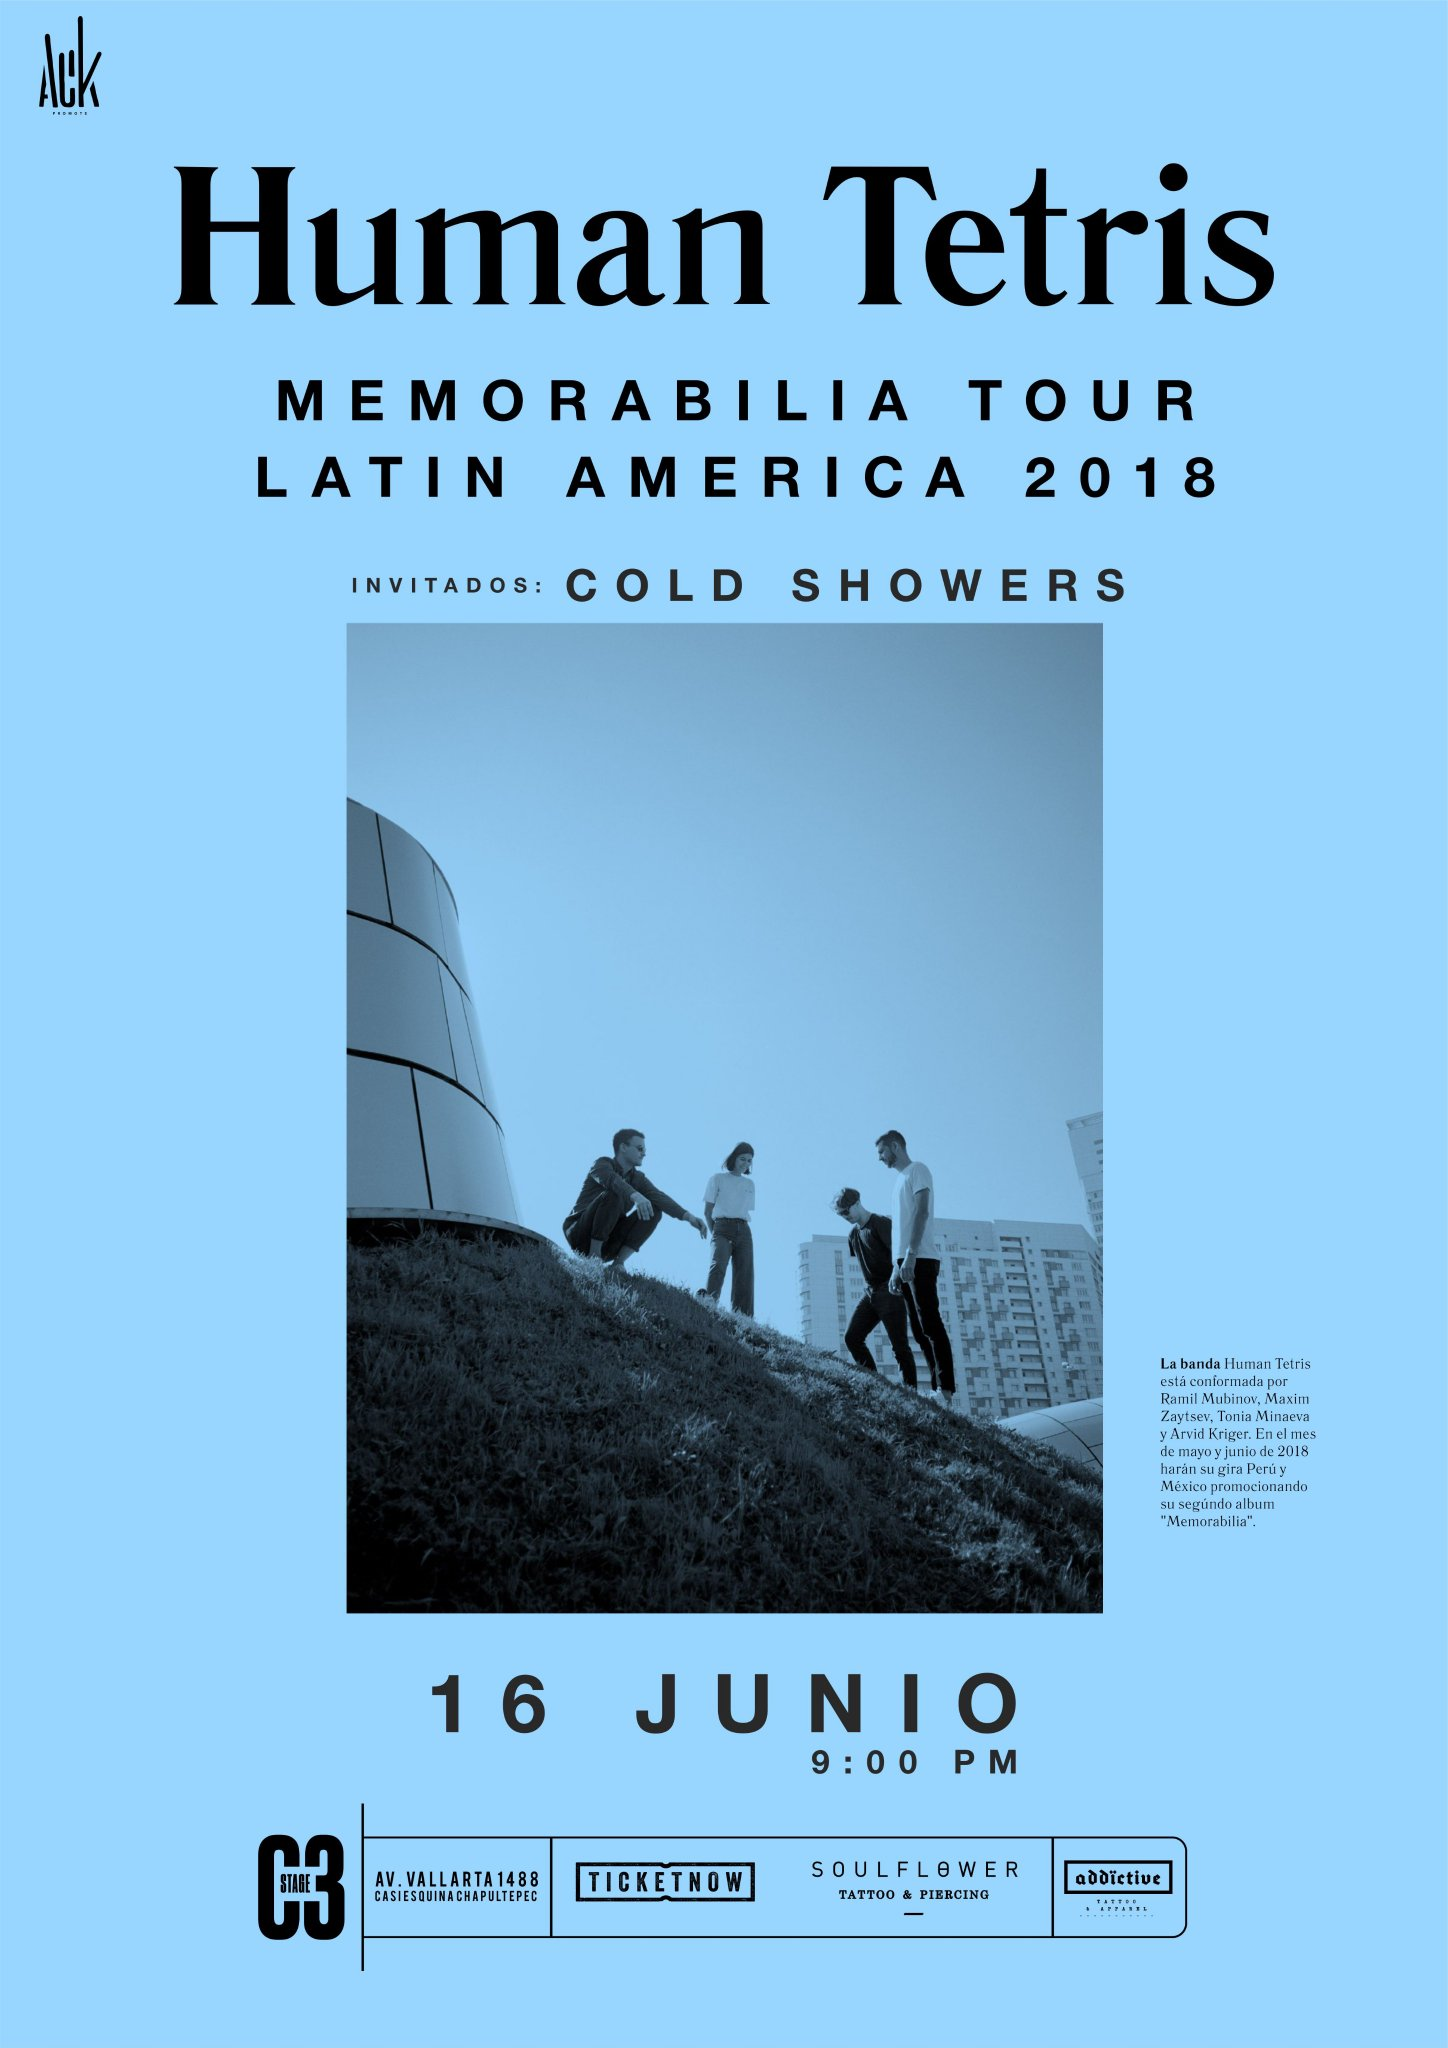 Human Tetris + Cold Showers - 16 de Junio @ C3 Stage